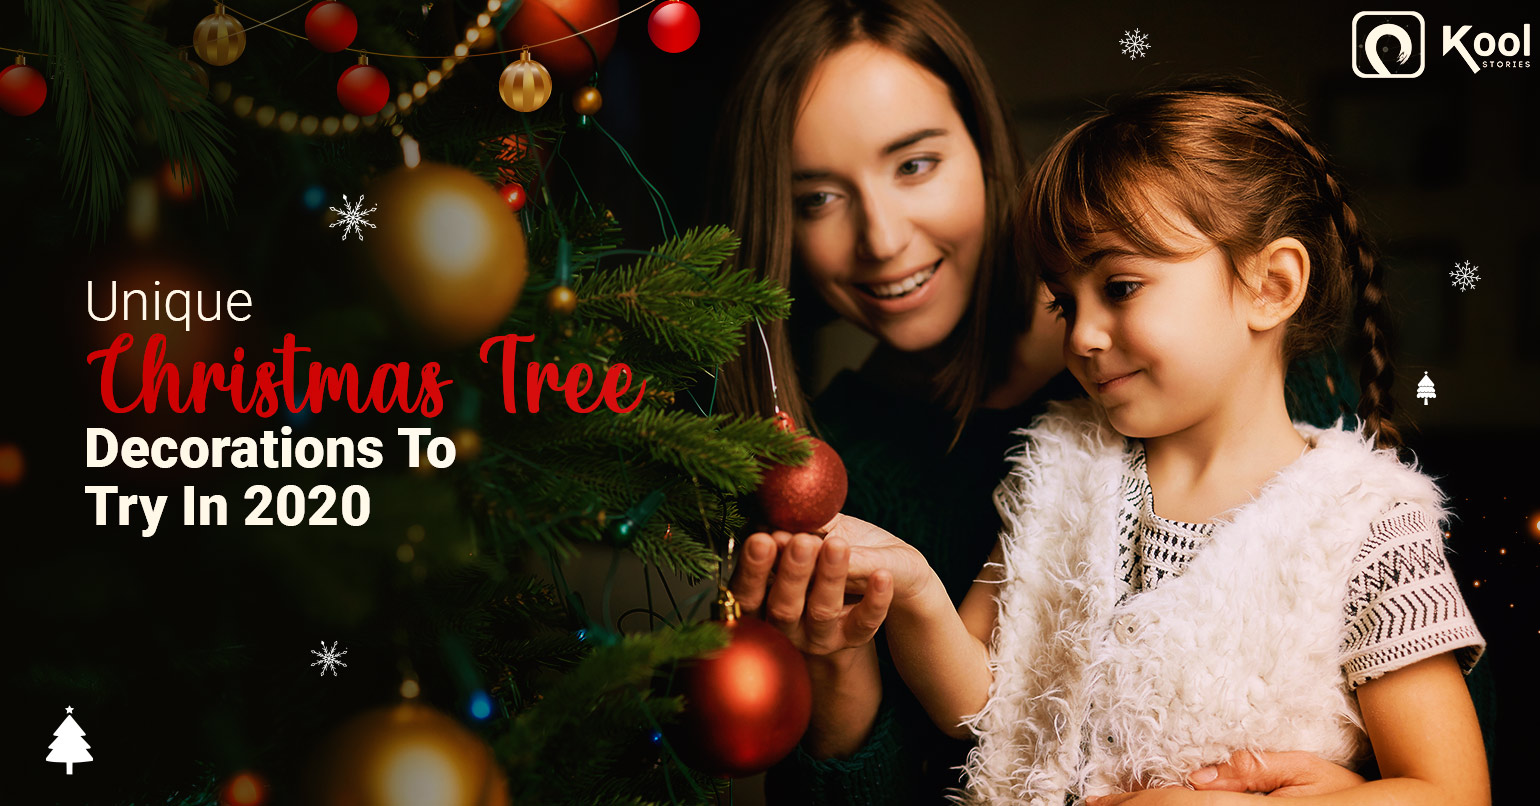 Unique Christmas Tree Decorations For a Fun-filled Festive Vibe in In 2020